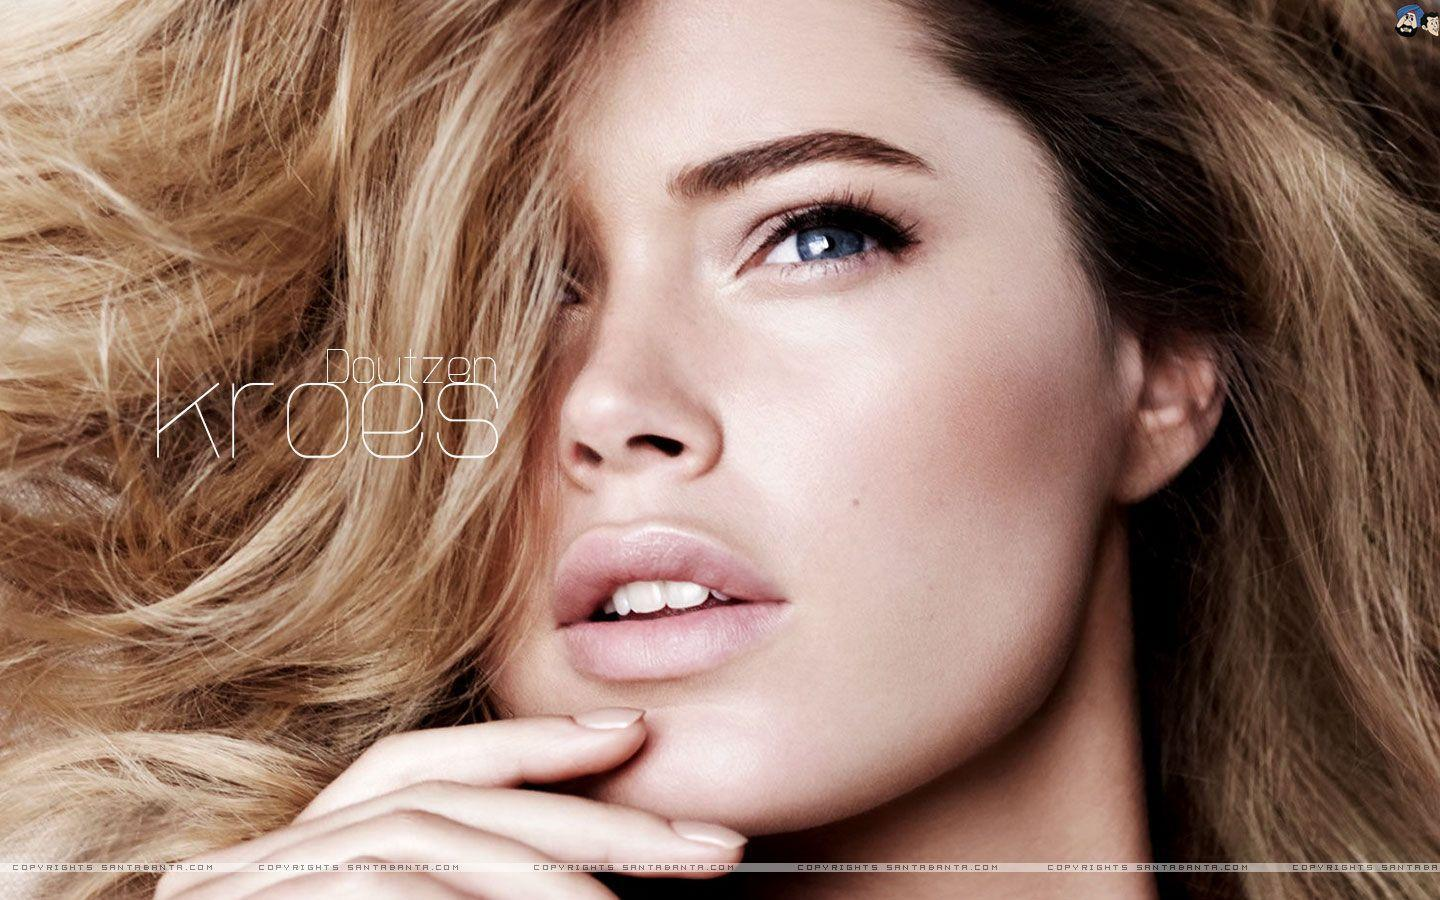 Doutzen Kroes - Doutzen Kroes Wallpaper (27555816) - Fanpop